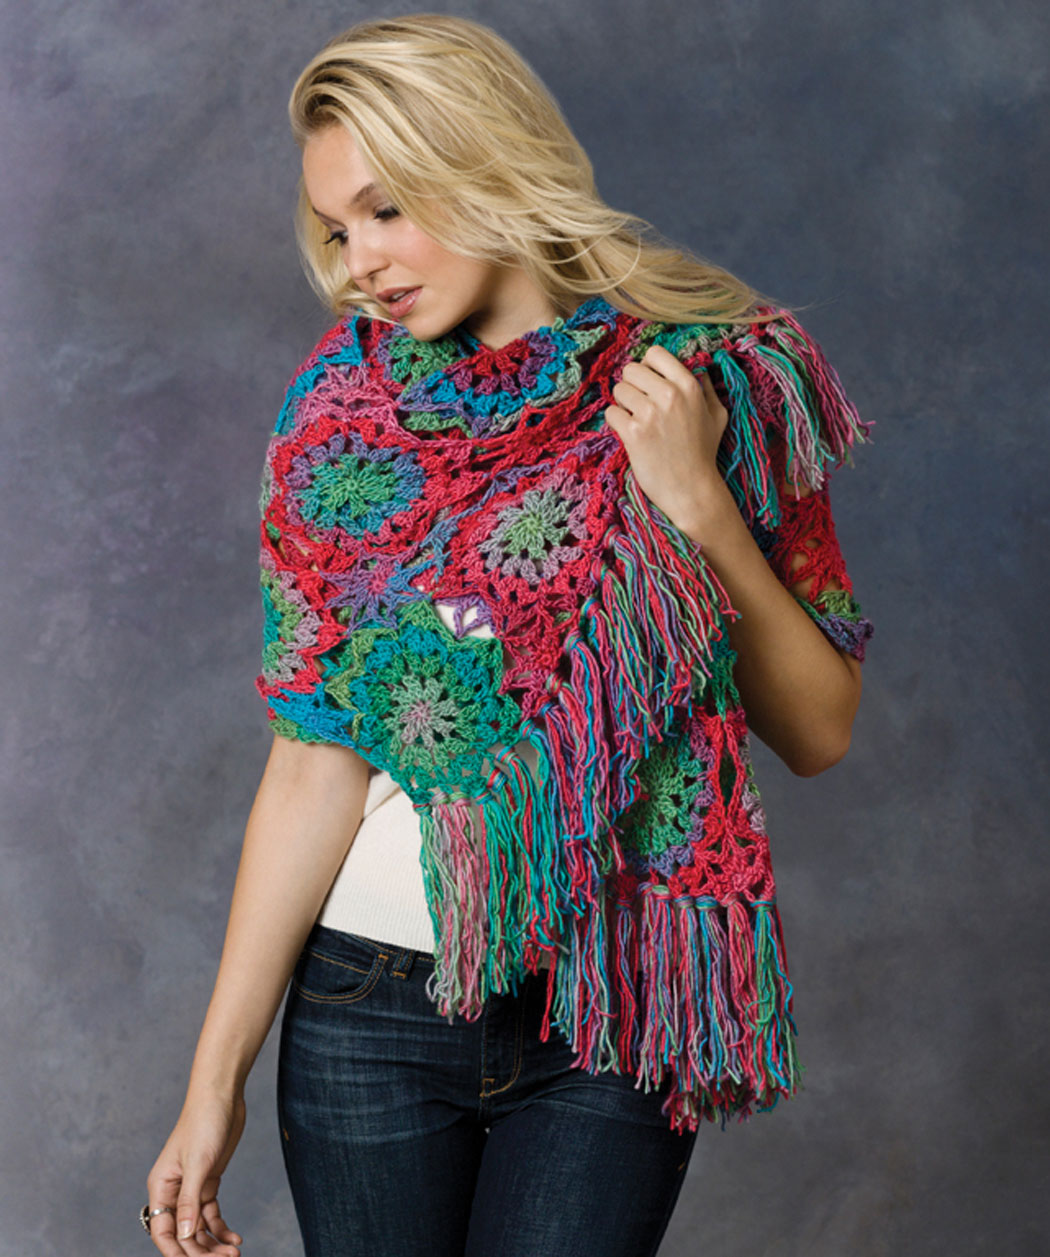 Crochet Lorelei Shawl Crochet Pattern Unforgettable Red Heart